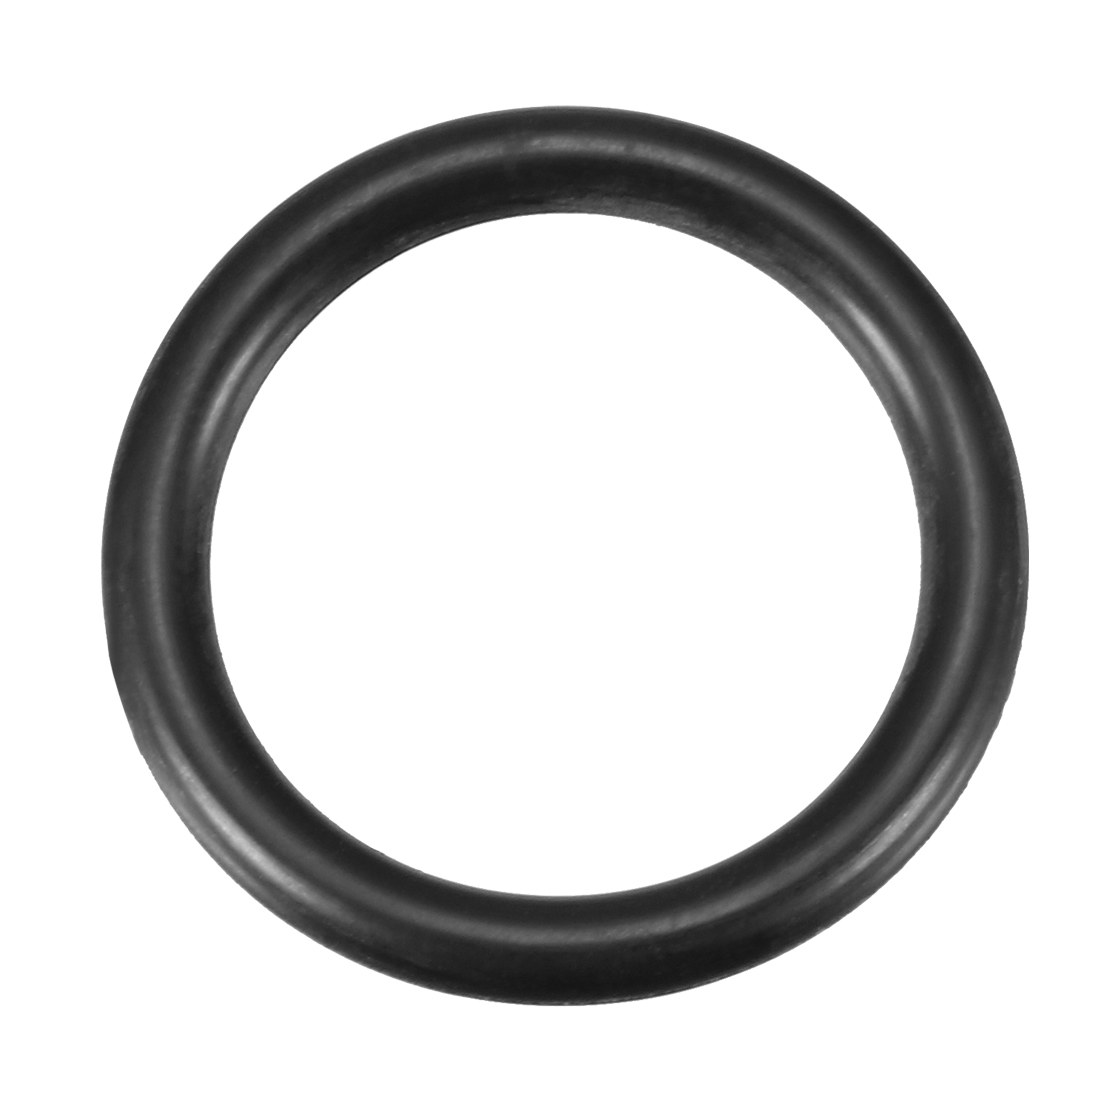 5 Pcs Black Rubber 25mm x 19mm Oil Seal O Rings Gaskets Washers